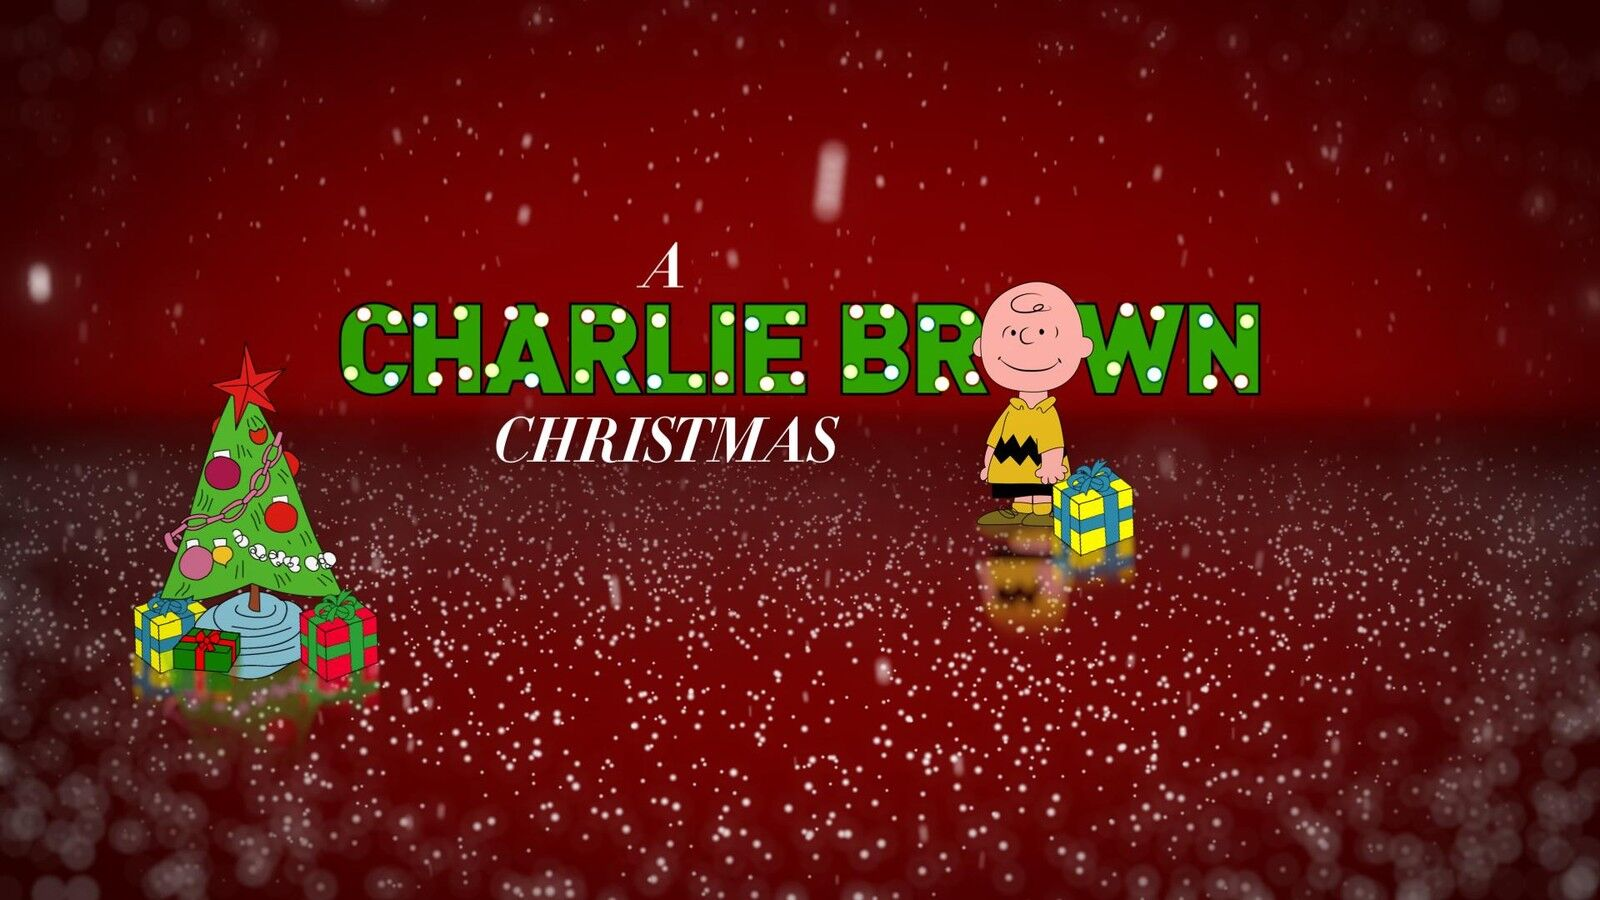 Watch Charlie Brown Christmas.A Charlie Brown Christmas Special Live Stream Watch Online